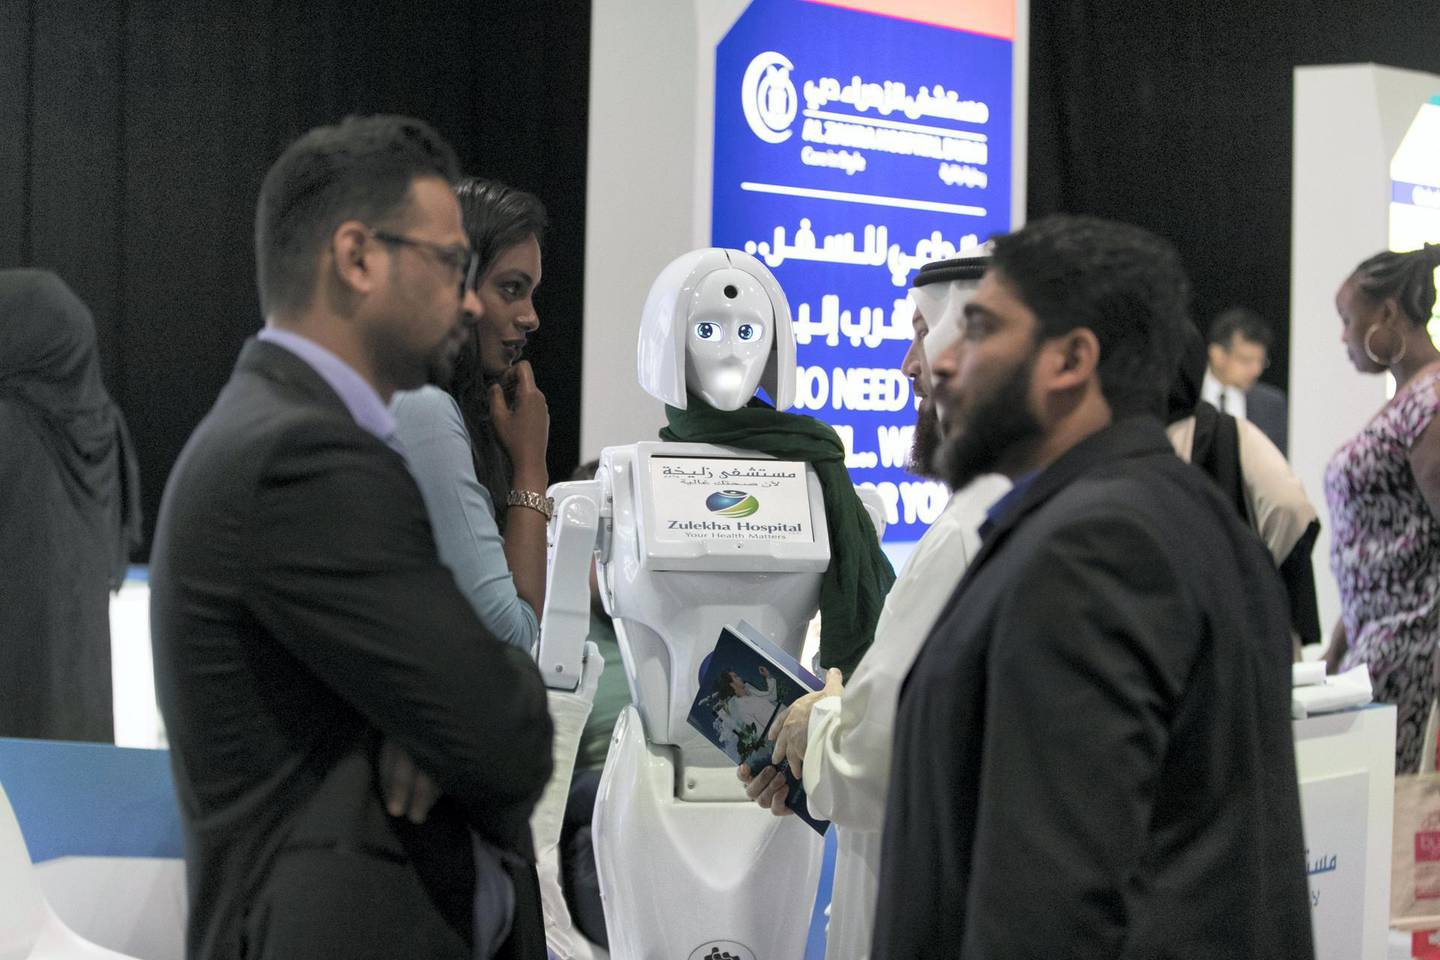 DUBAI, UNITED ARAB EMIRATES - Feb 21, 2018.Zulekha Hospital displays an assistance robot at their booth in Dubai International Health Tourism Forum.(Photo: Reem Mohammed/ The National)Reporter: Nick WebsterSection: NA